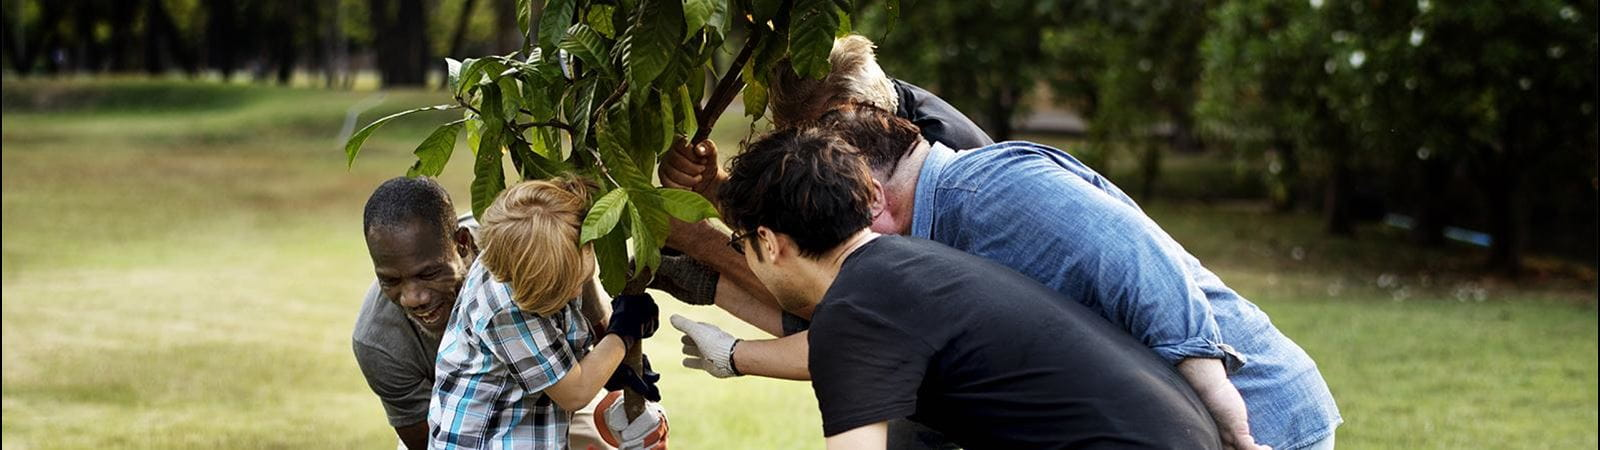 Community group planting a tree